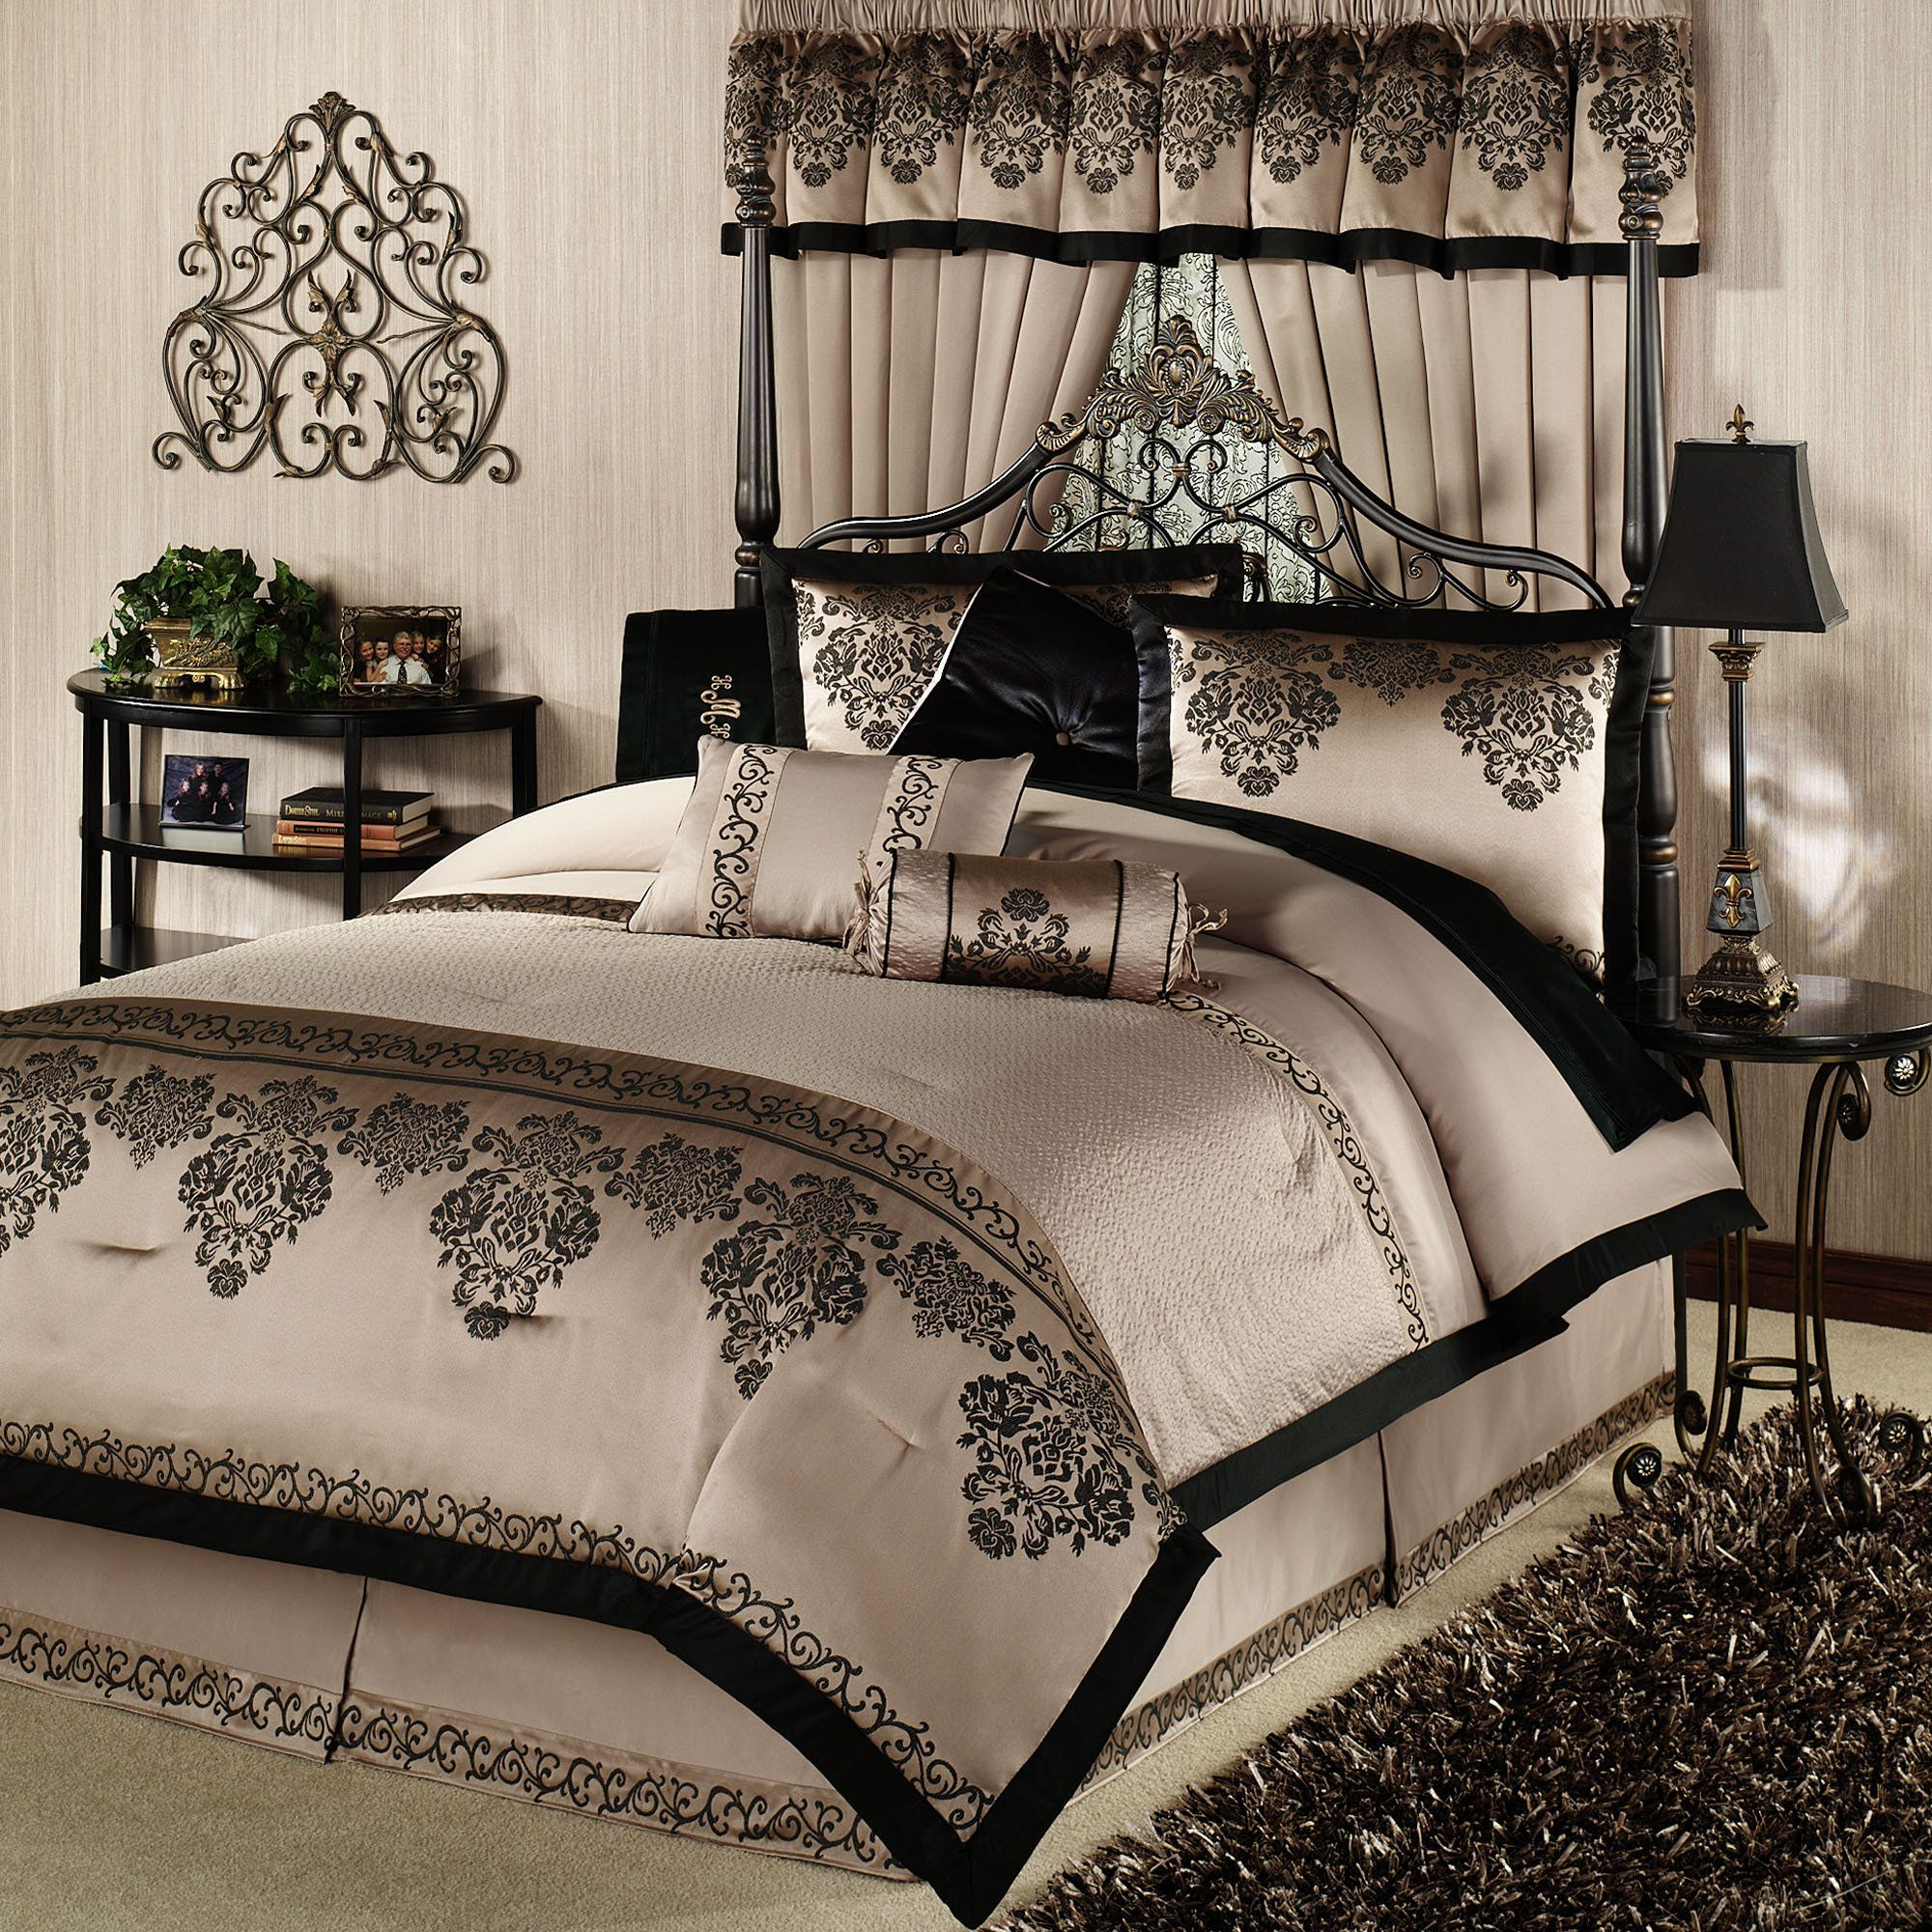 reviews sizes elegant comforters camelot bedding details sets size pin ii the king bedroom bed swatch overview